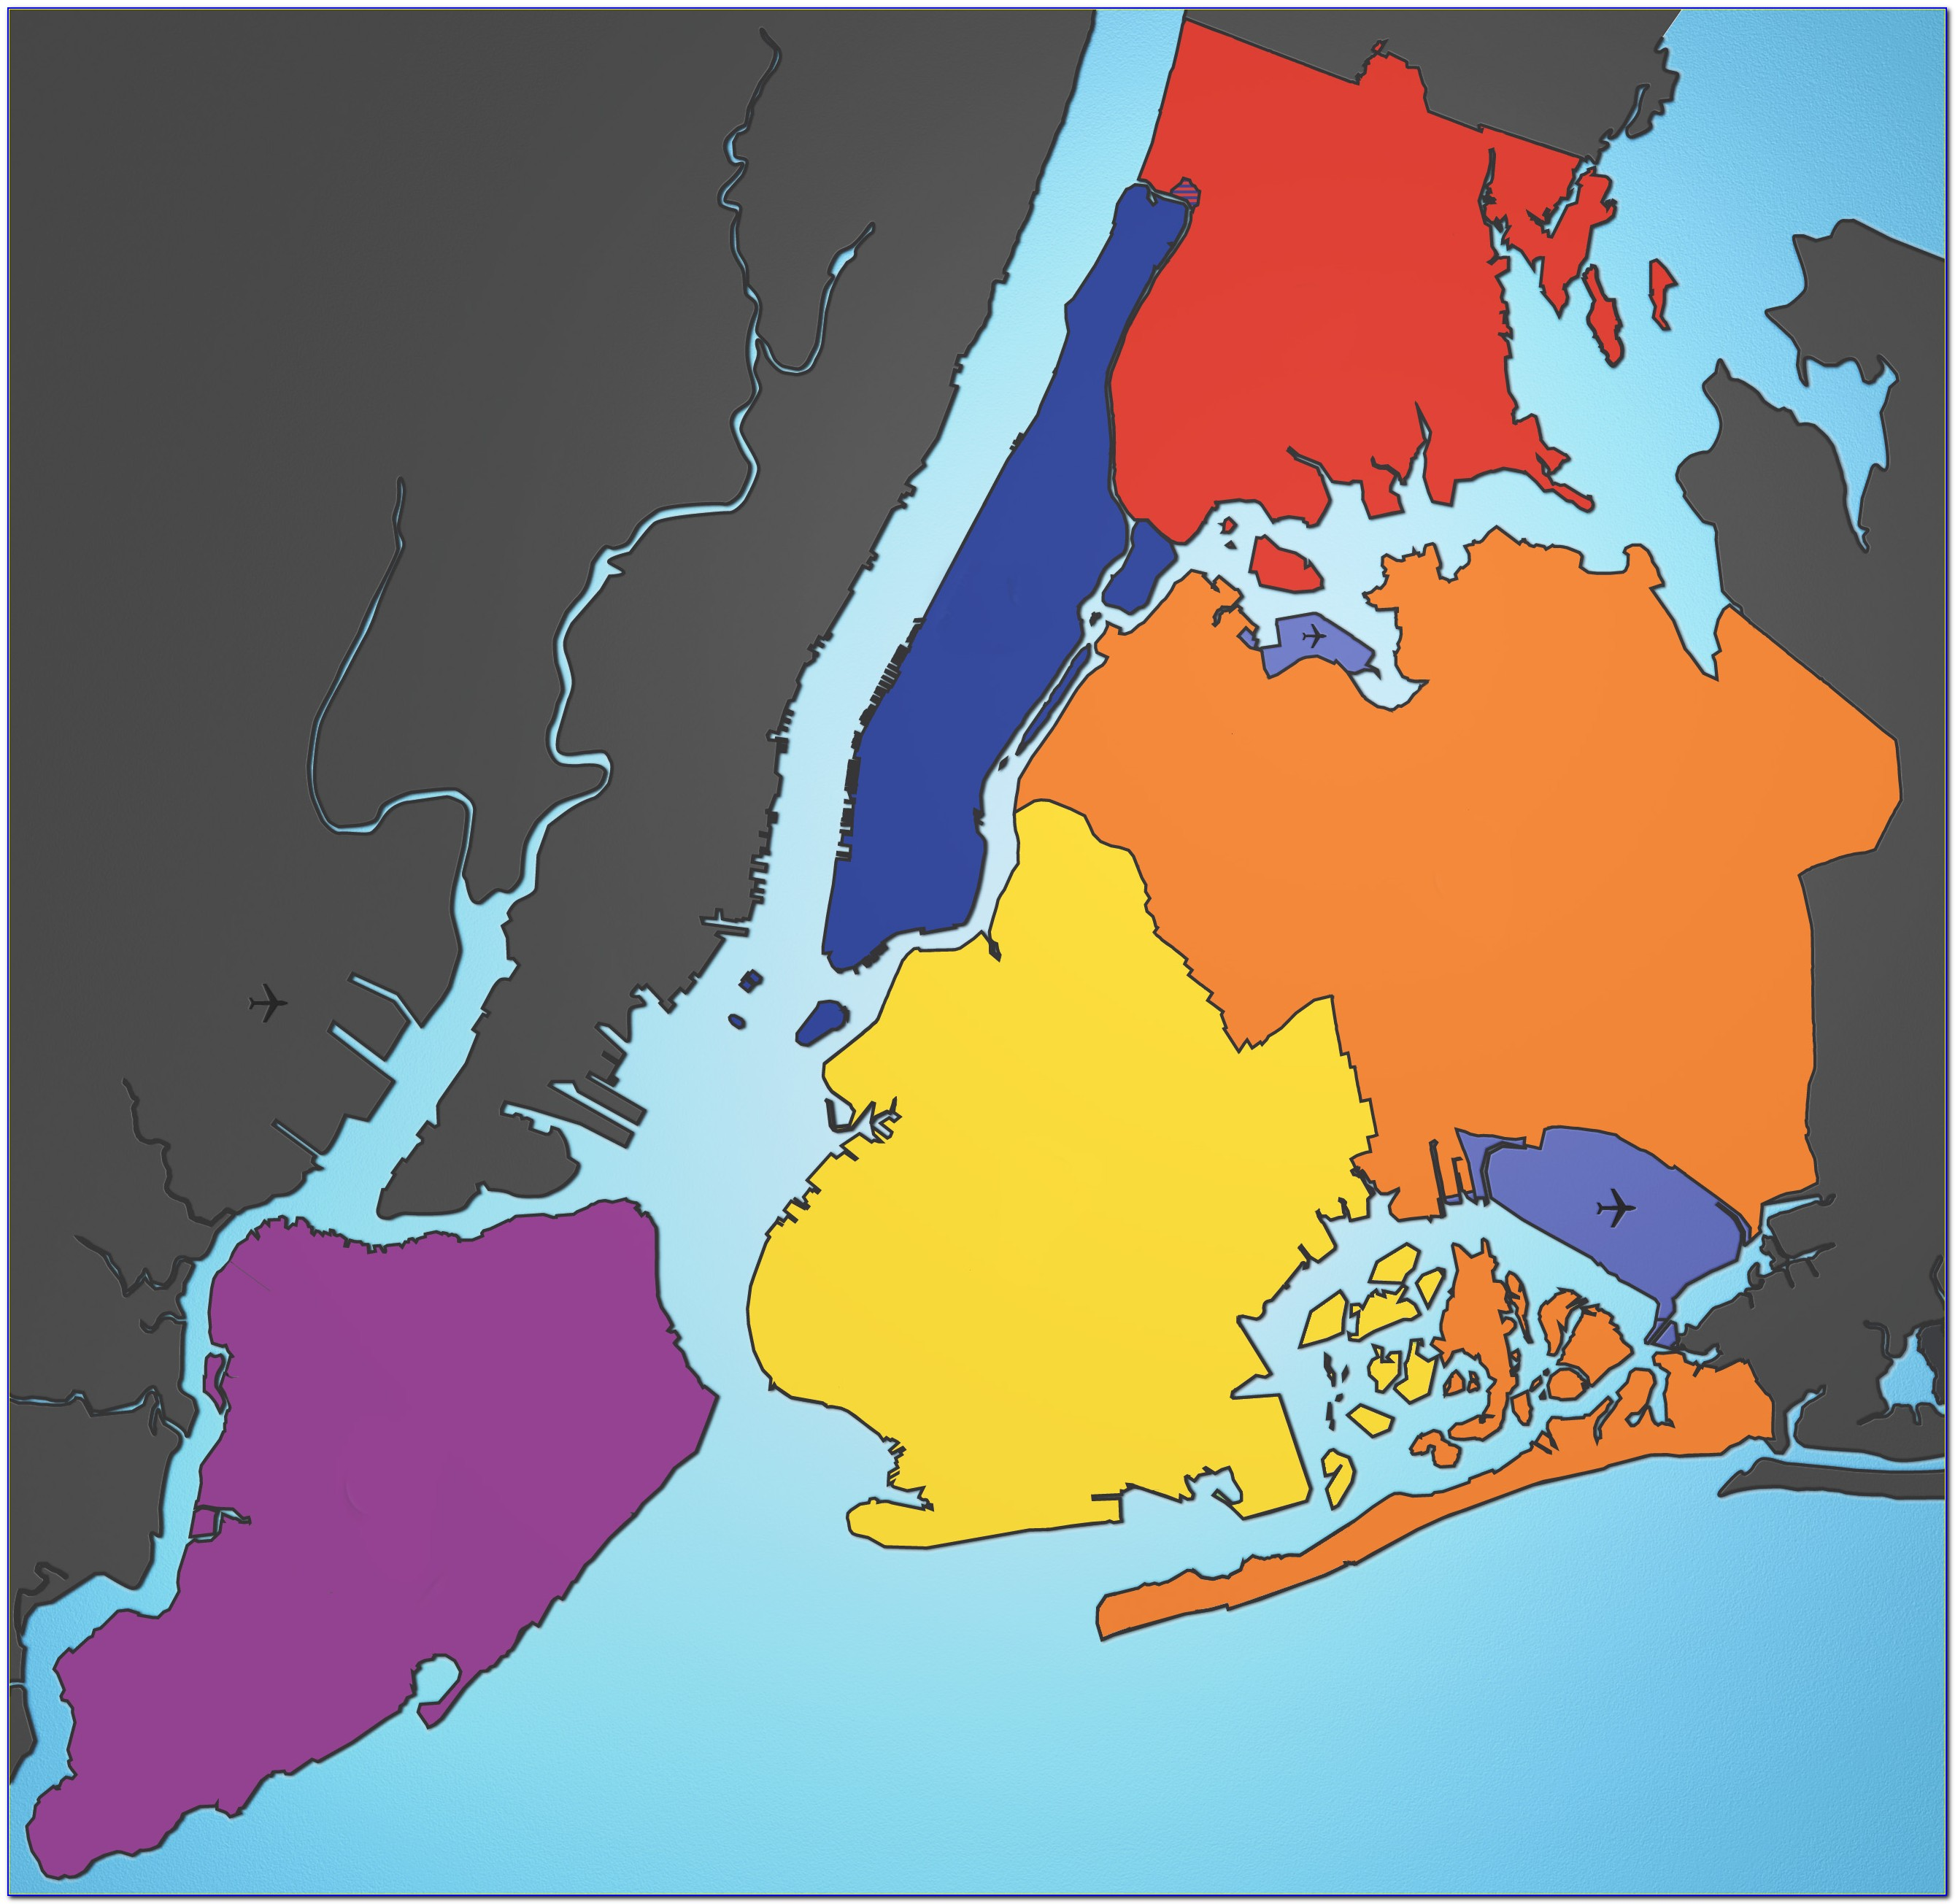 Map Of The Five Boroughs In New York